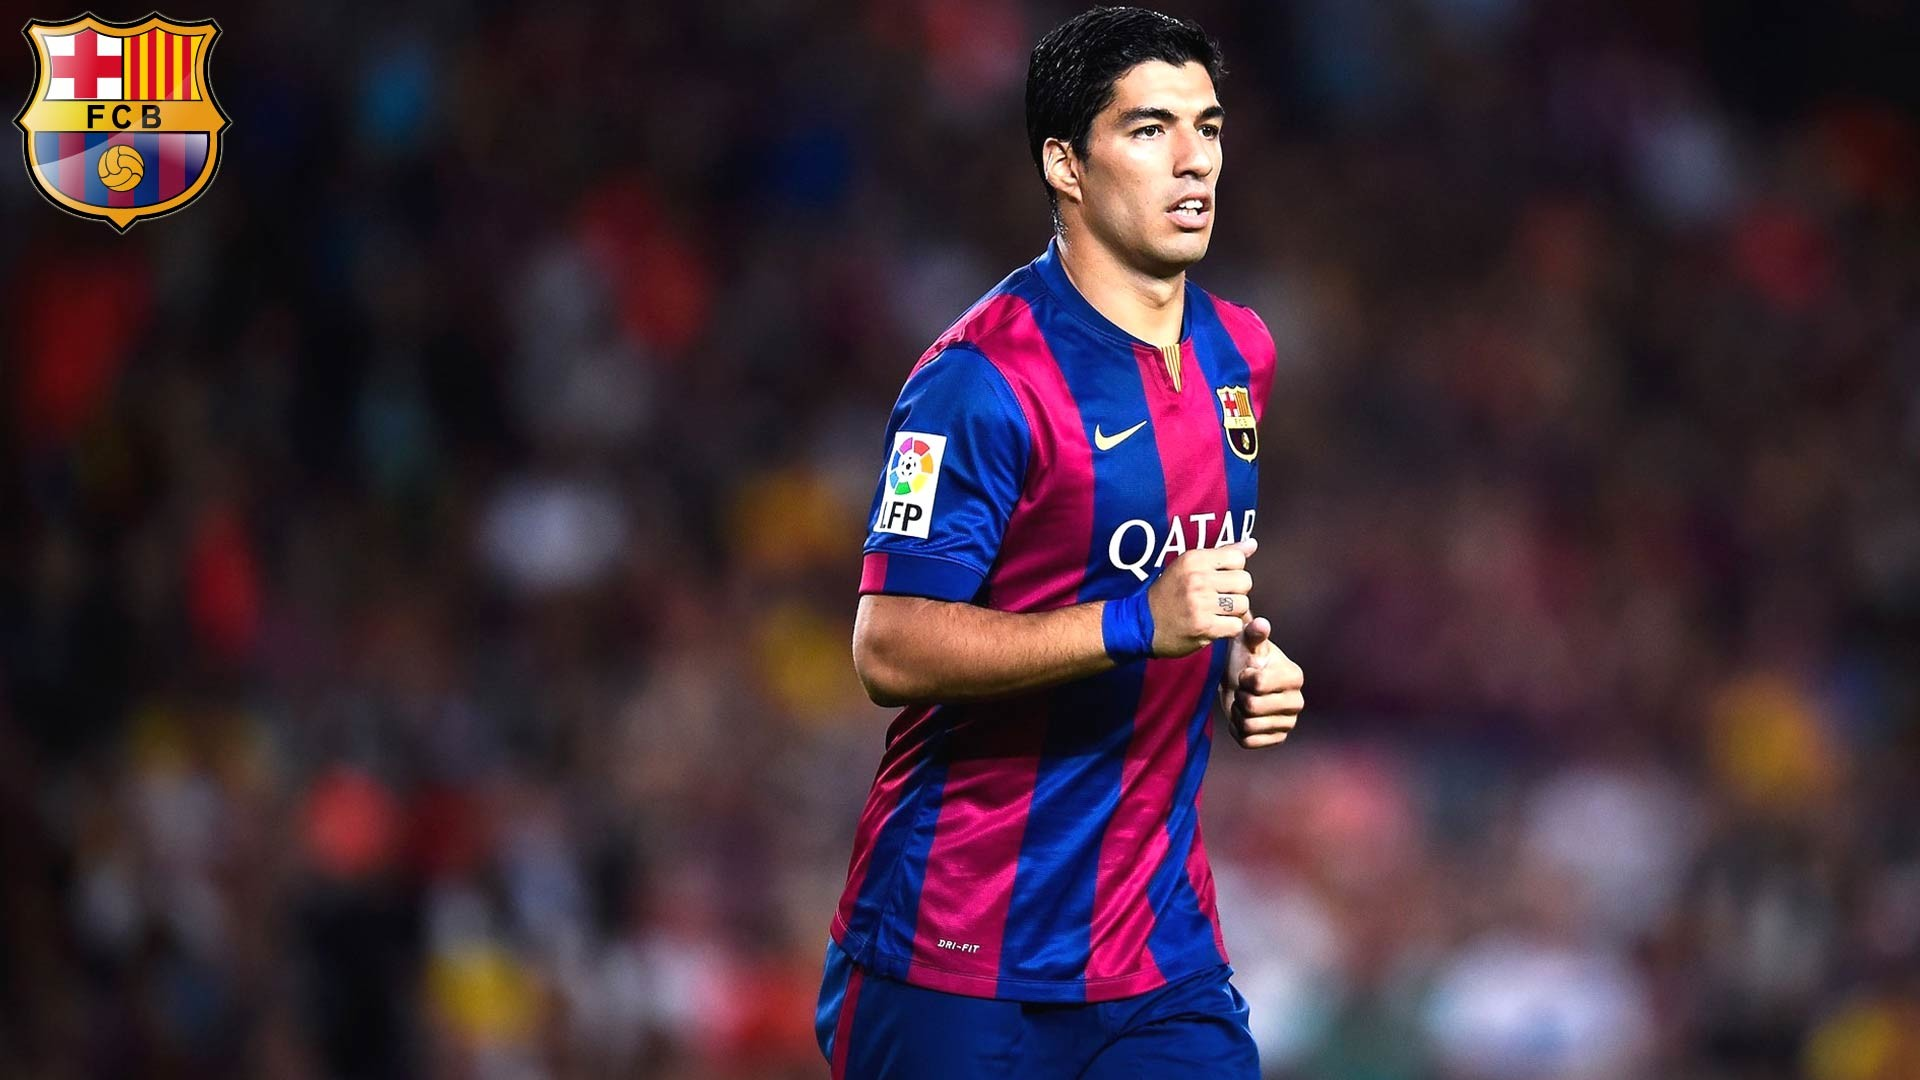 Luis Suarez, FC Barcelona – Full HD Wallpaper. ImgPrix.com – High  Definition Wallpapers and Covers | Sports HD Wallpapers | Pinterest | FC  Barcelona, …